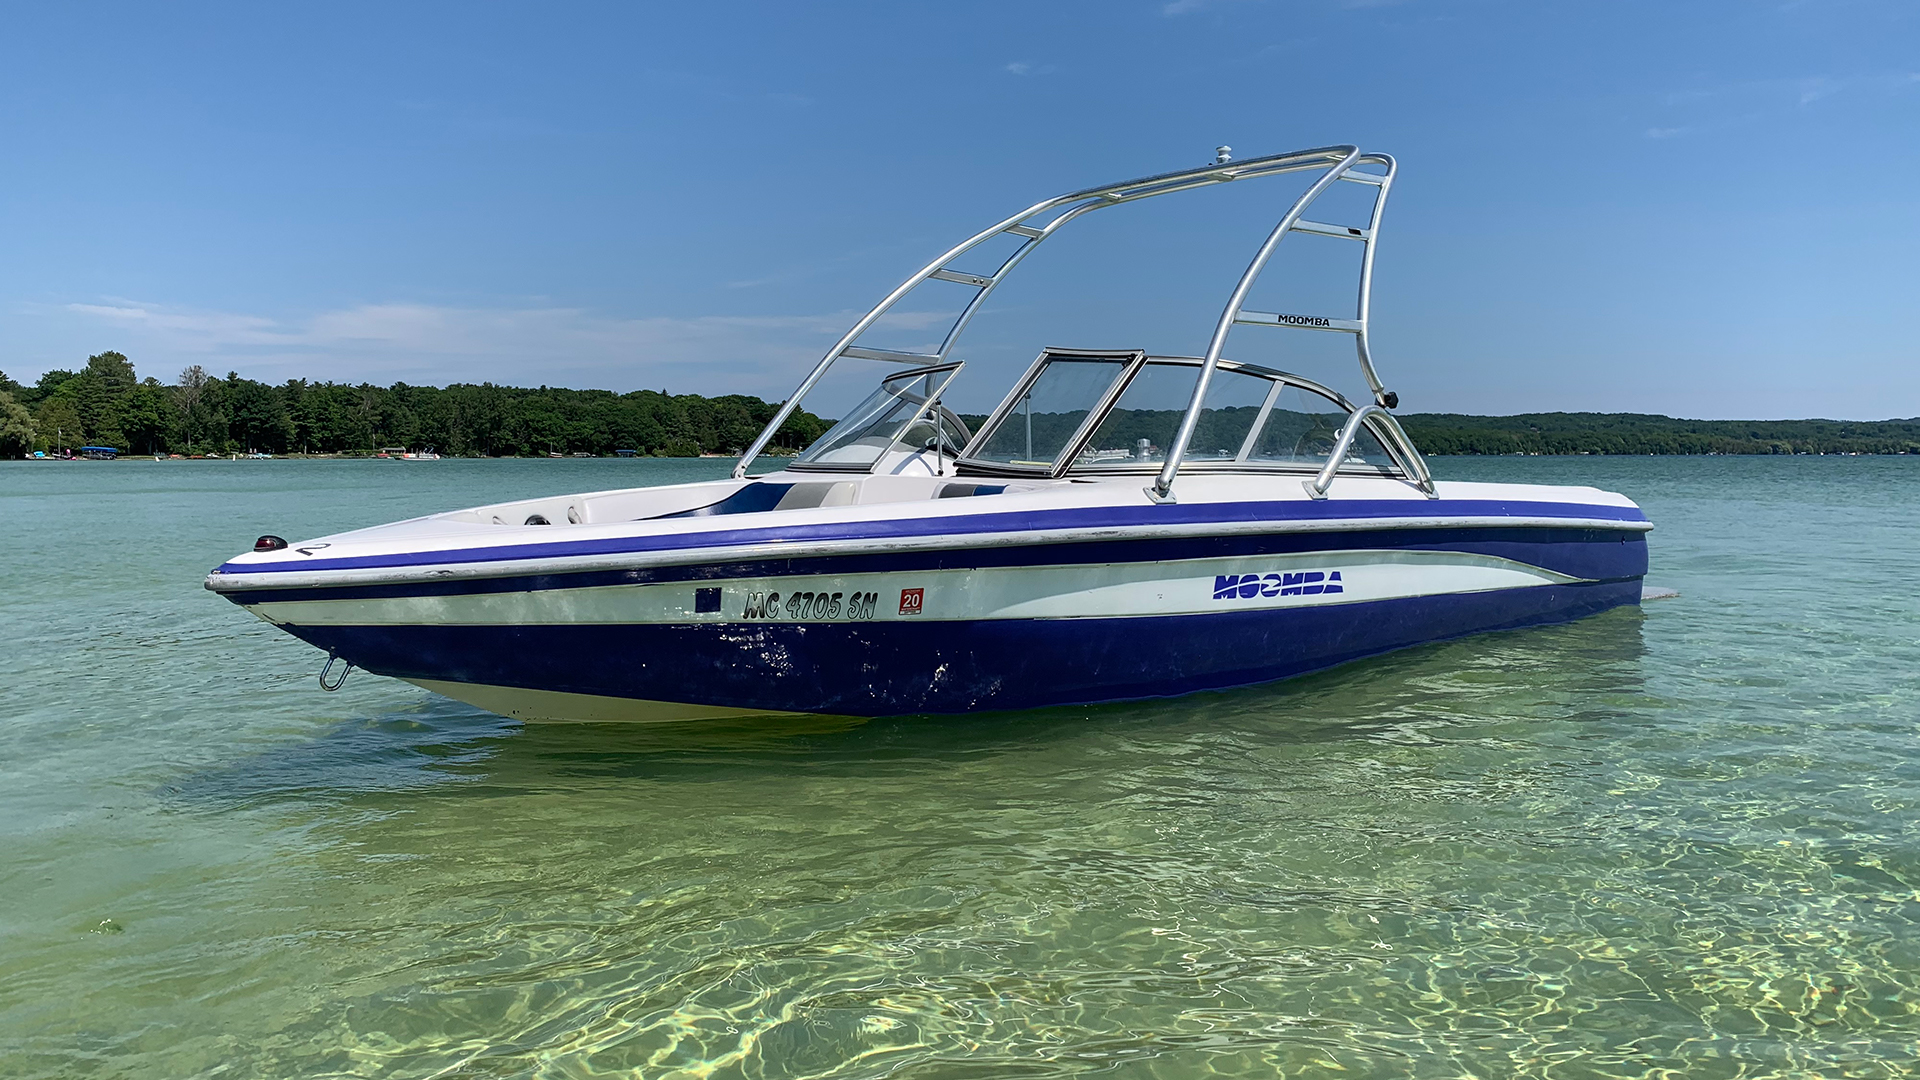 Sunset Moomba wakeboat port profile